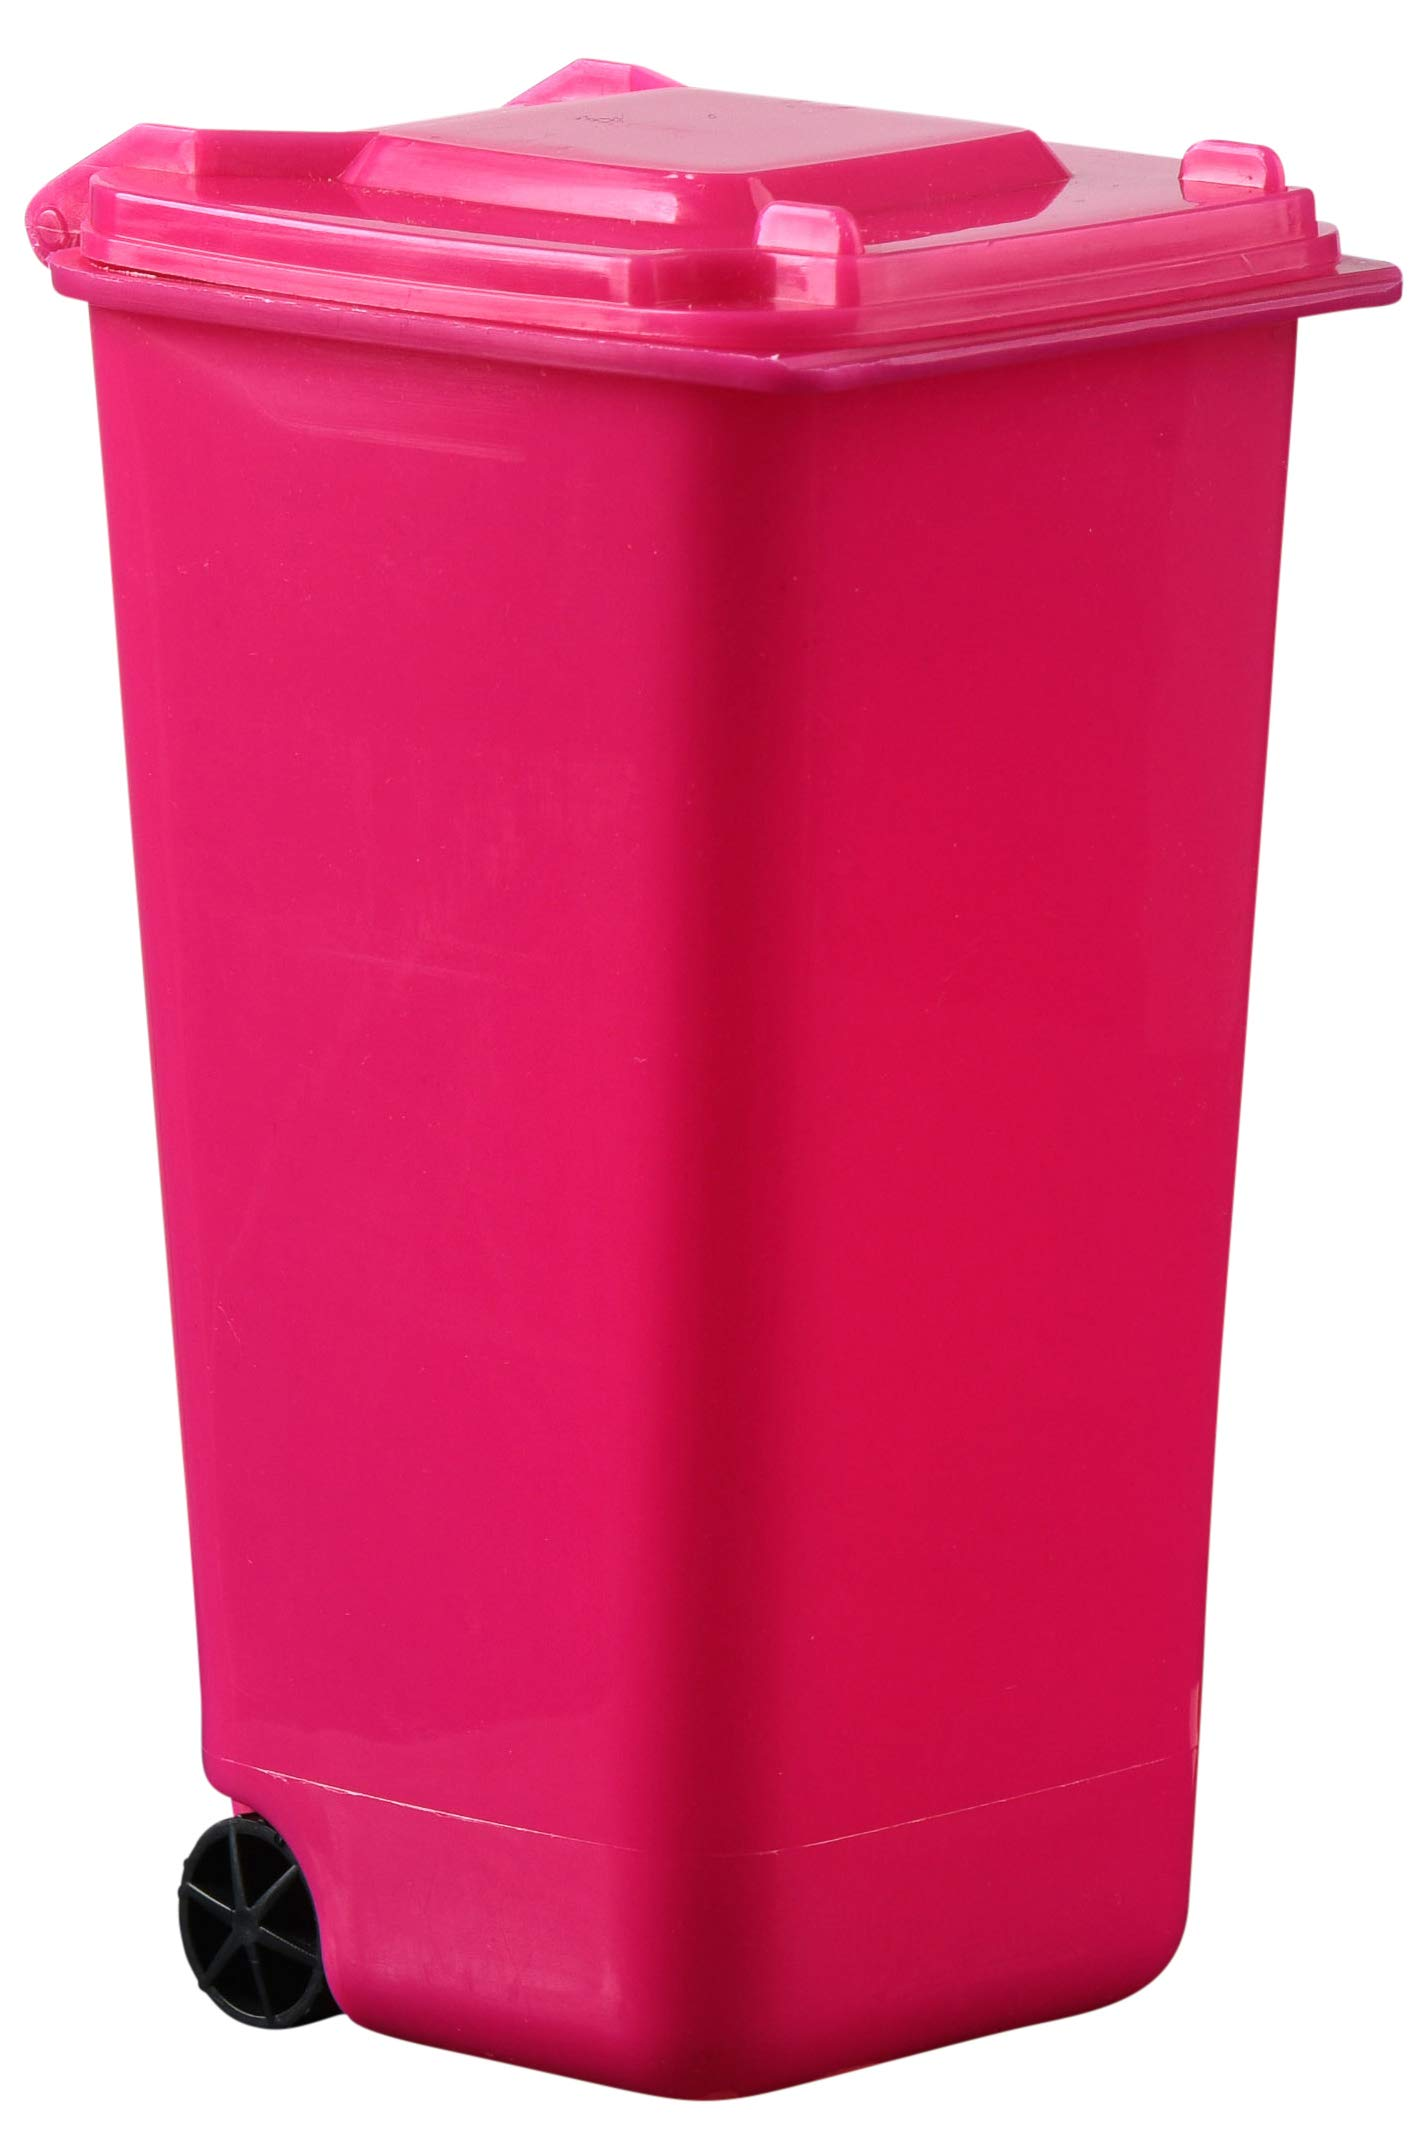 Plastic Toy Garbage Cans Playset - Used for Pencil Holder, Desktop Organizer, Fun Playing, Novelty and Party Favors Red 6 x 3 X 6 (6 Pack) (Pink)